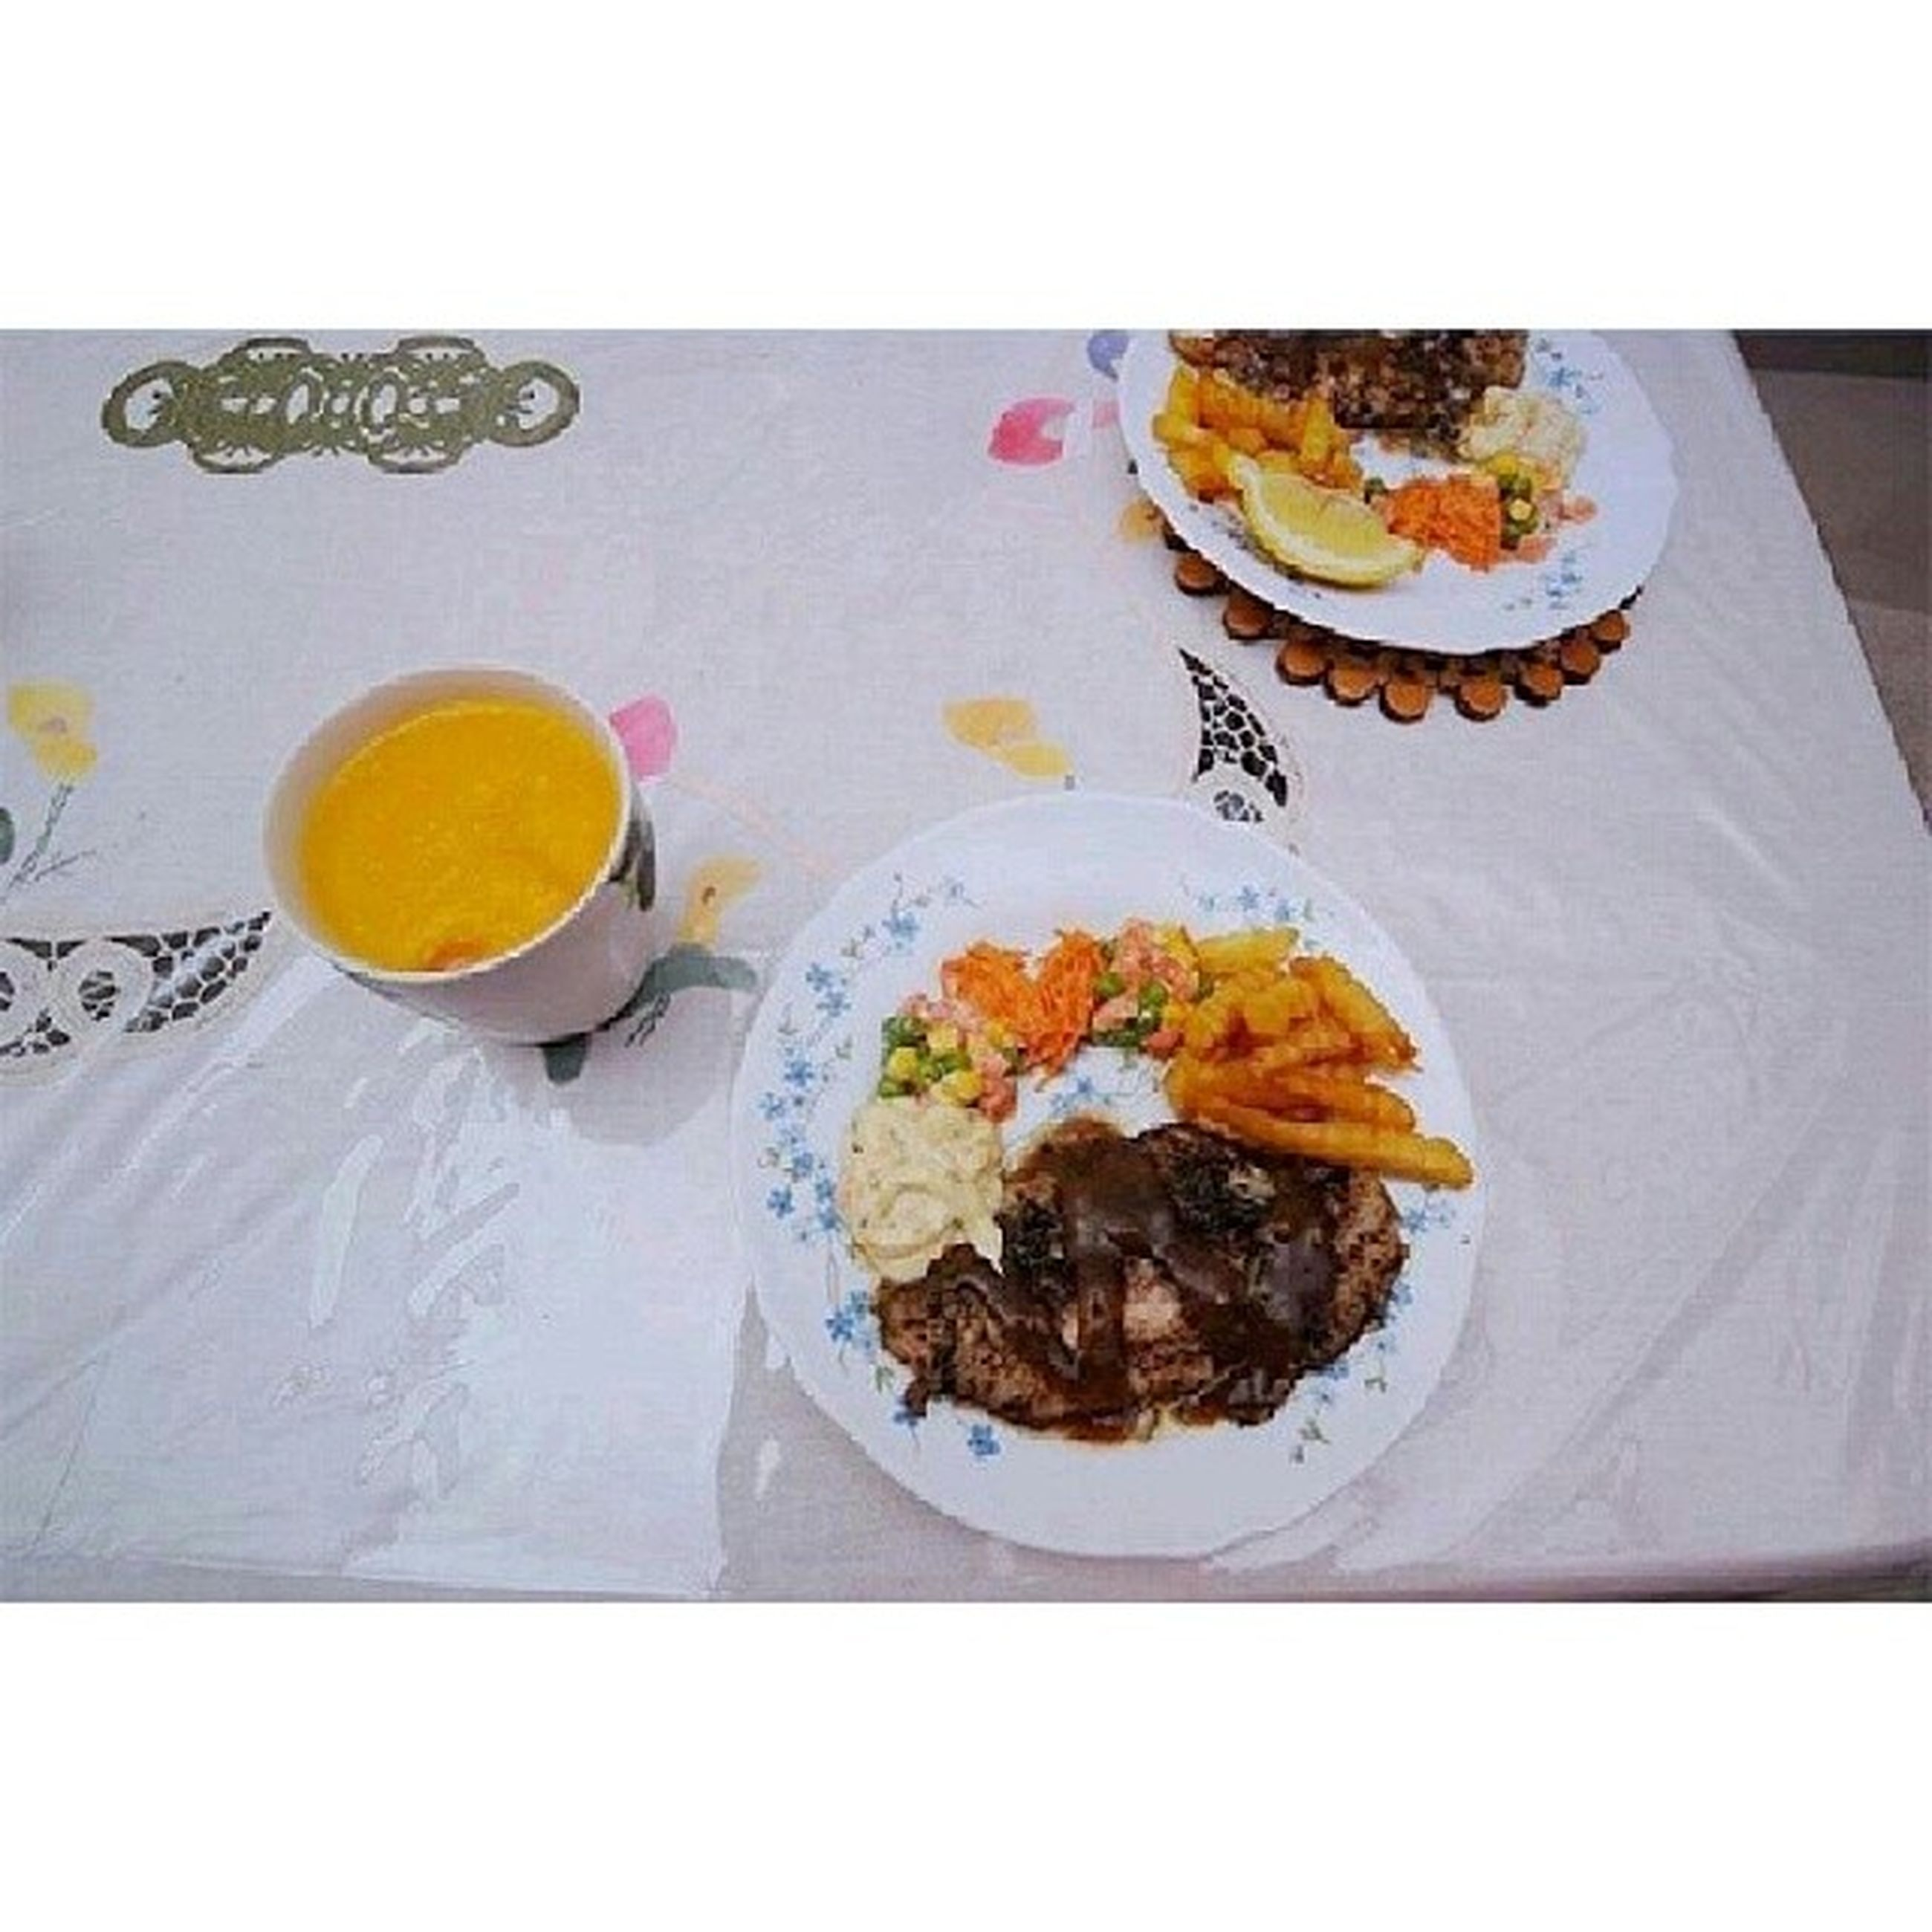 food and drink, freshness, food, table, indoors, drink, ready-to-eat, plate, healthy eating, refreshment, still life, serving size, meal, drinking glass, high angle view, served, bowl, breakfast, fork, meat